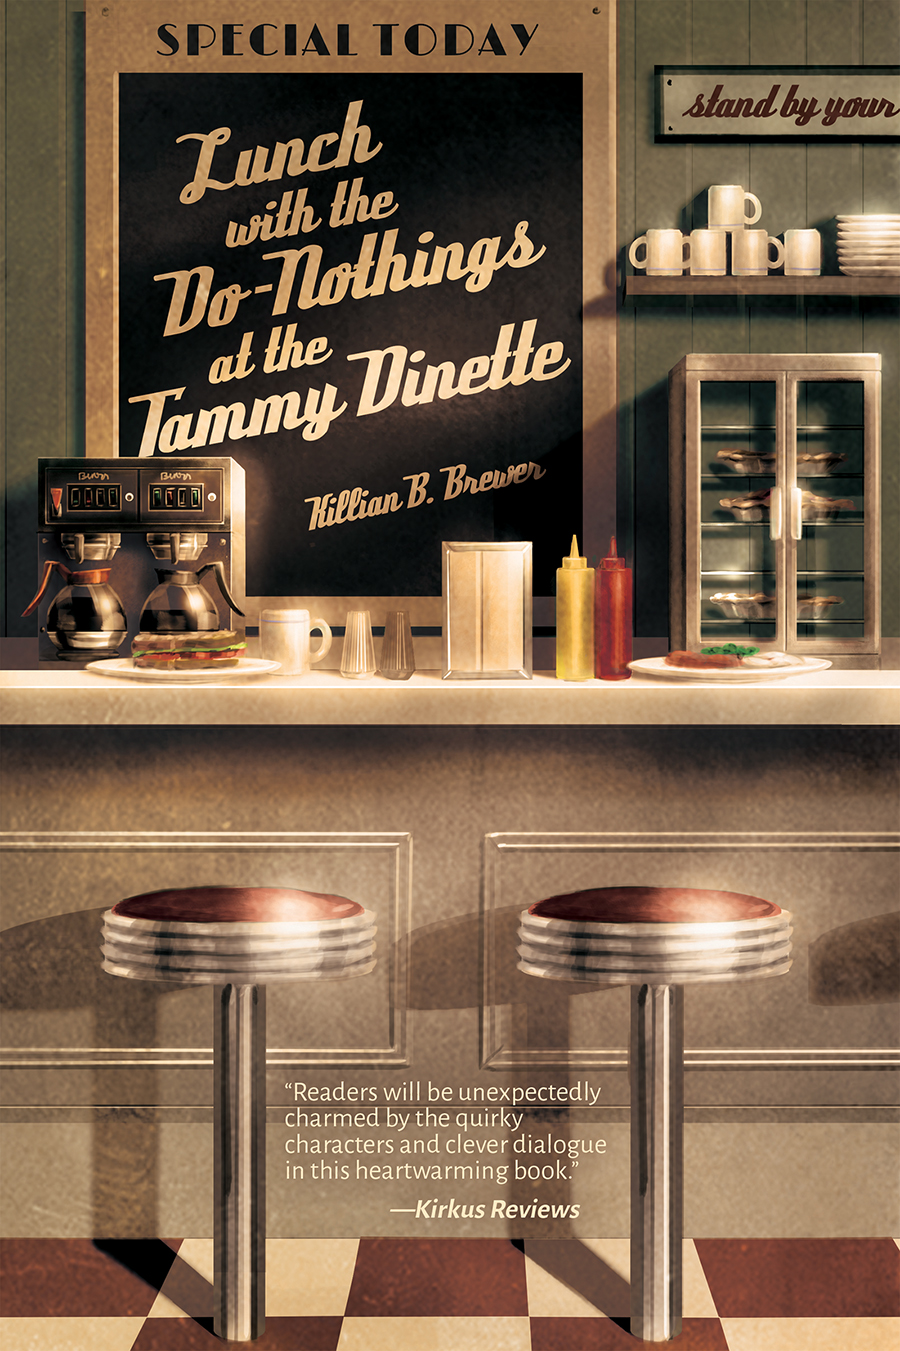 Guest Post and Giveaway: Lunch With the Do-Nothings at the Tammy Dinette by Killian B. Brewer